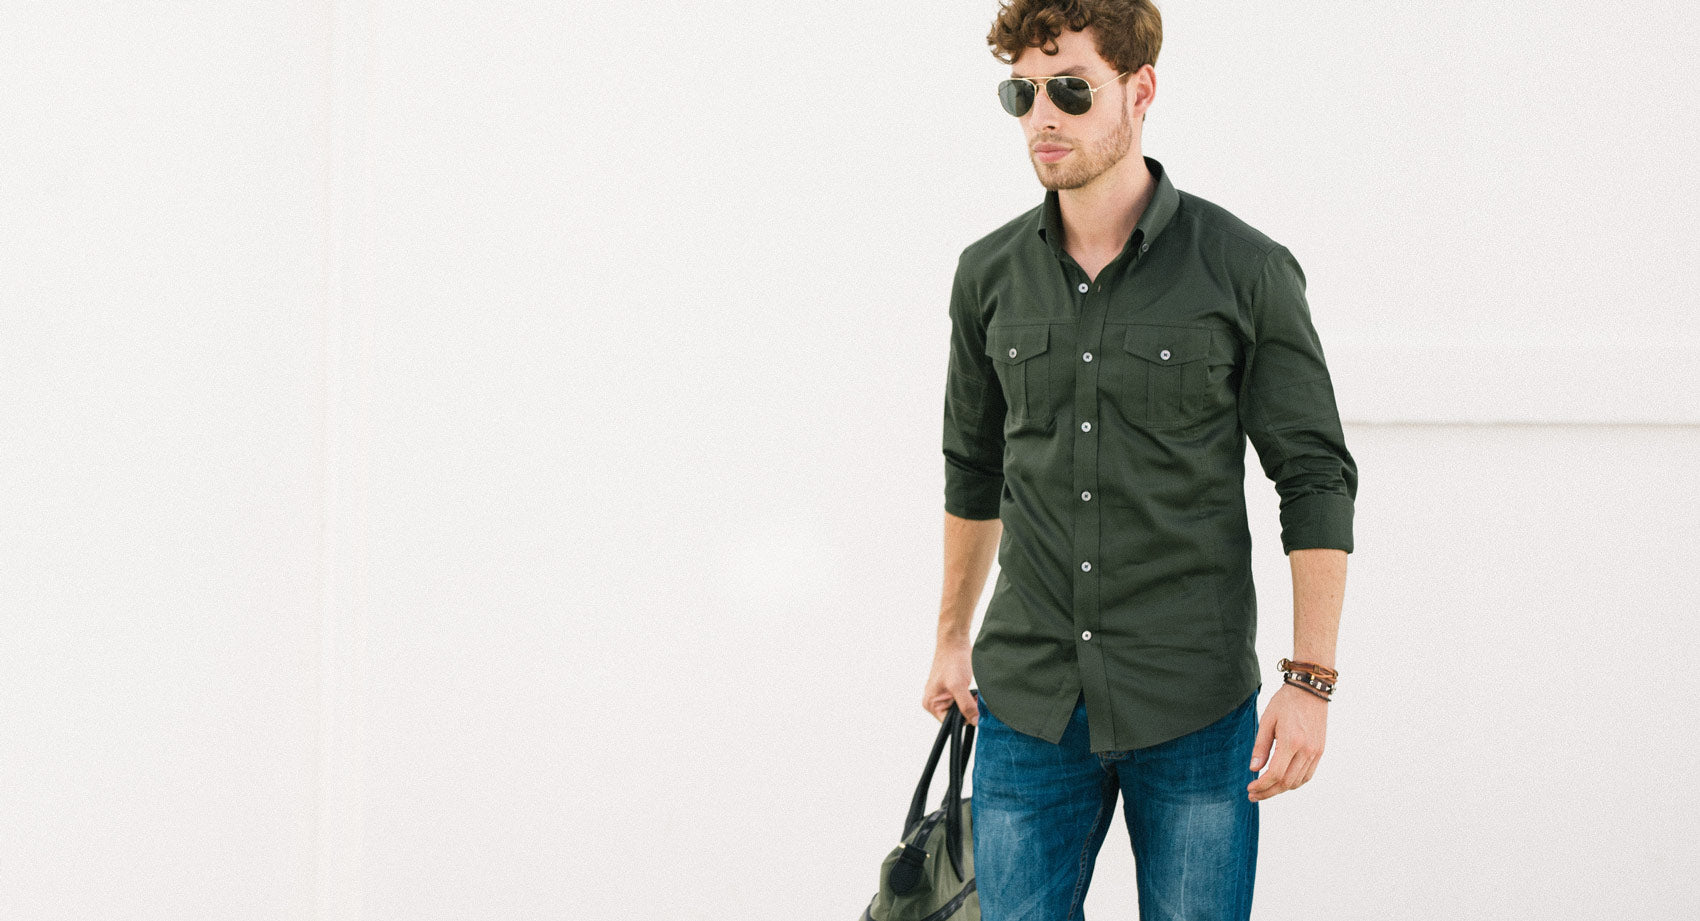 Olive Green Utility Shirt